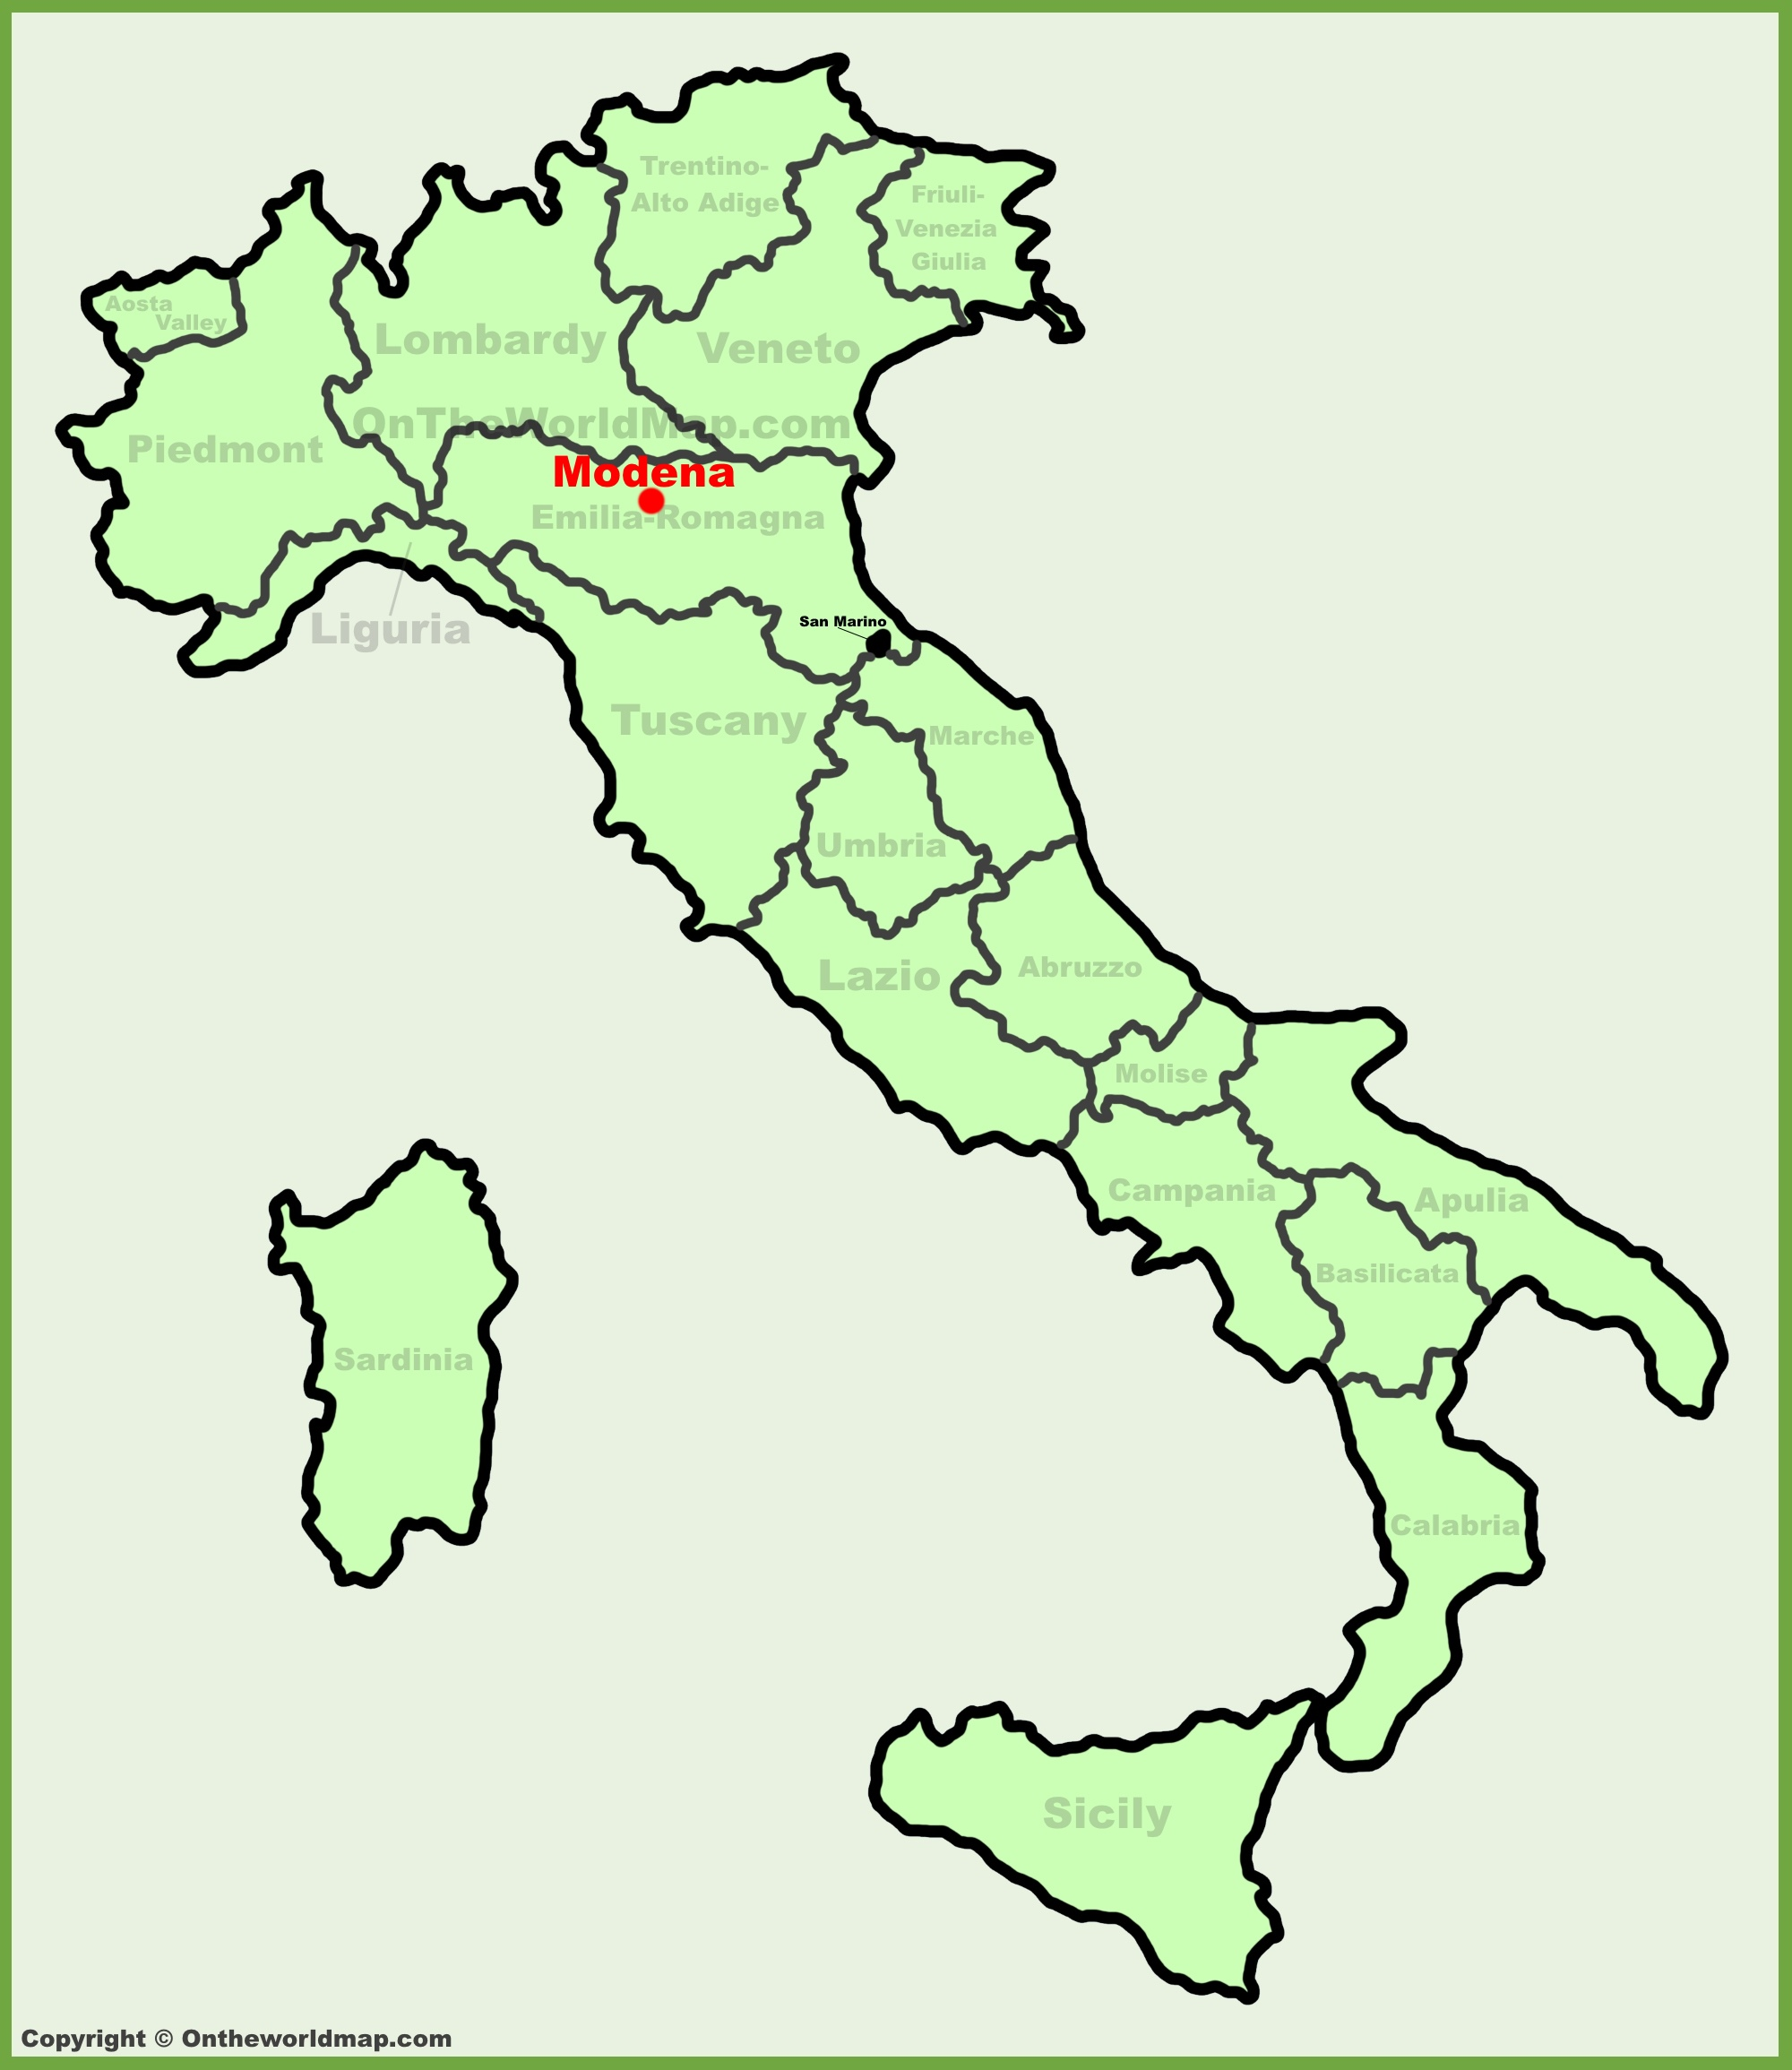 Modena location on the Italy map